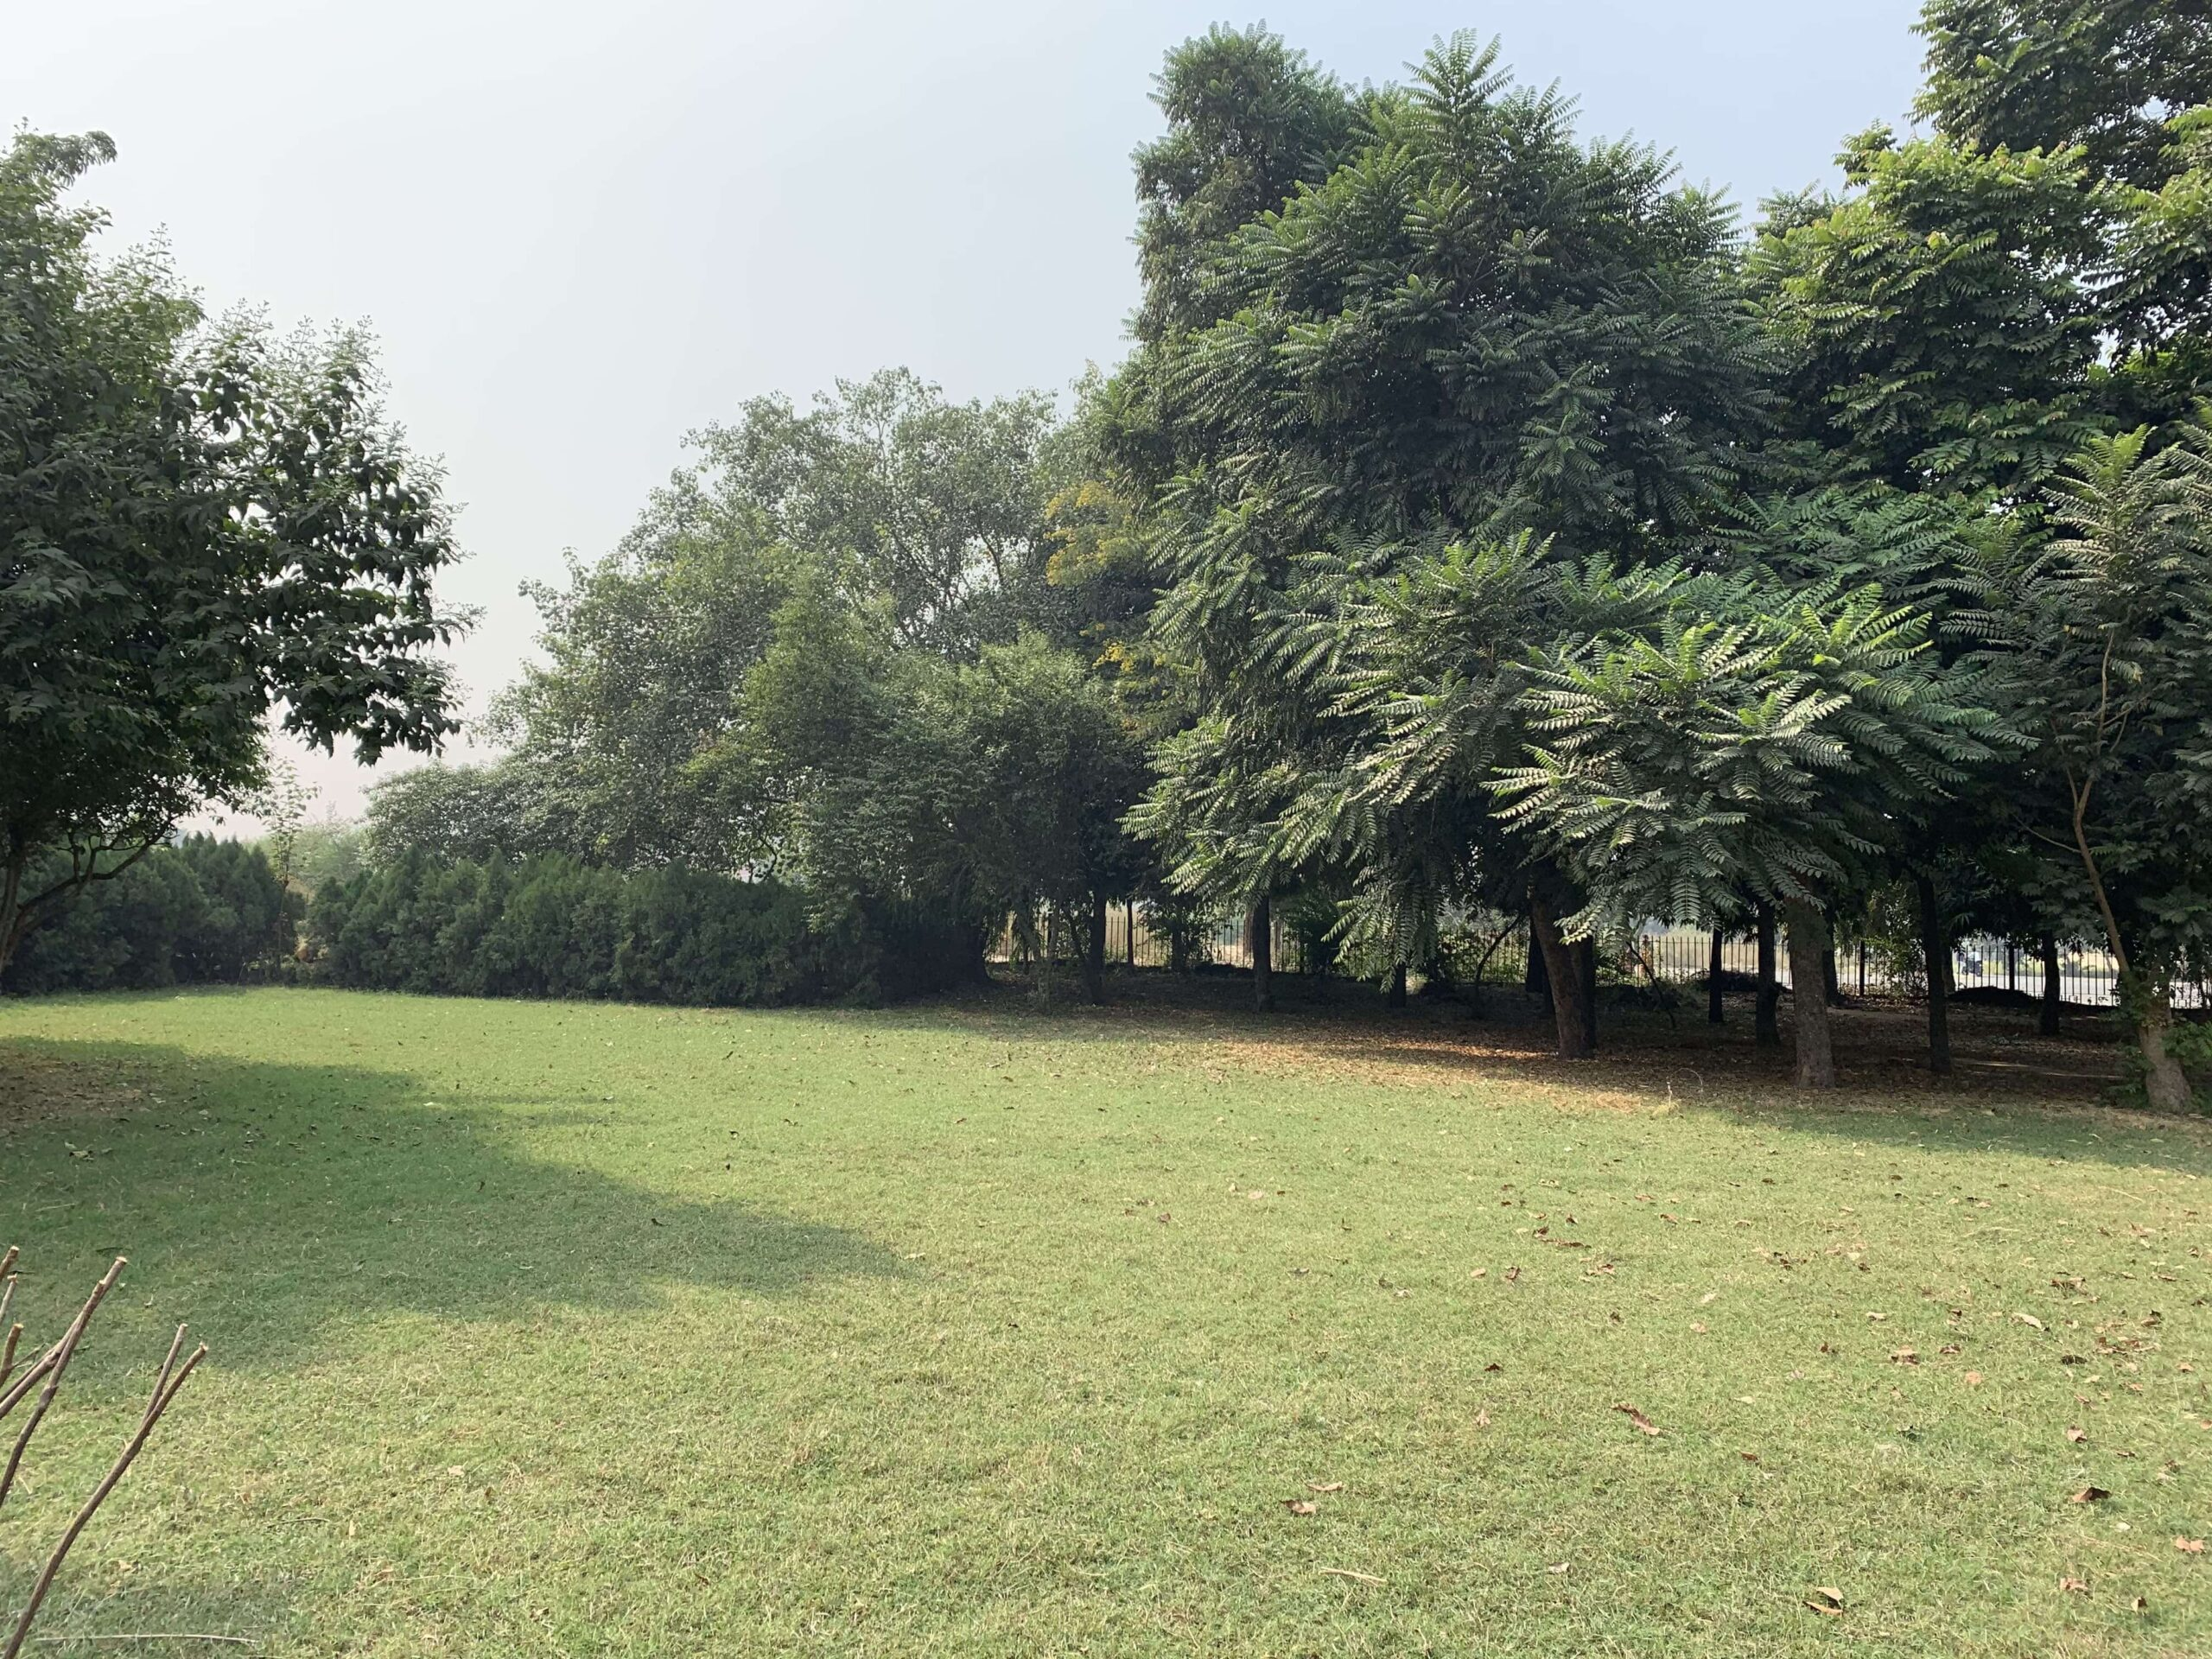 October 25 2020 - Central Park Cleanliness Drive - 2